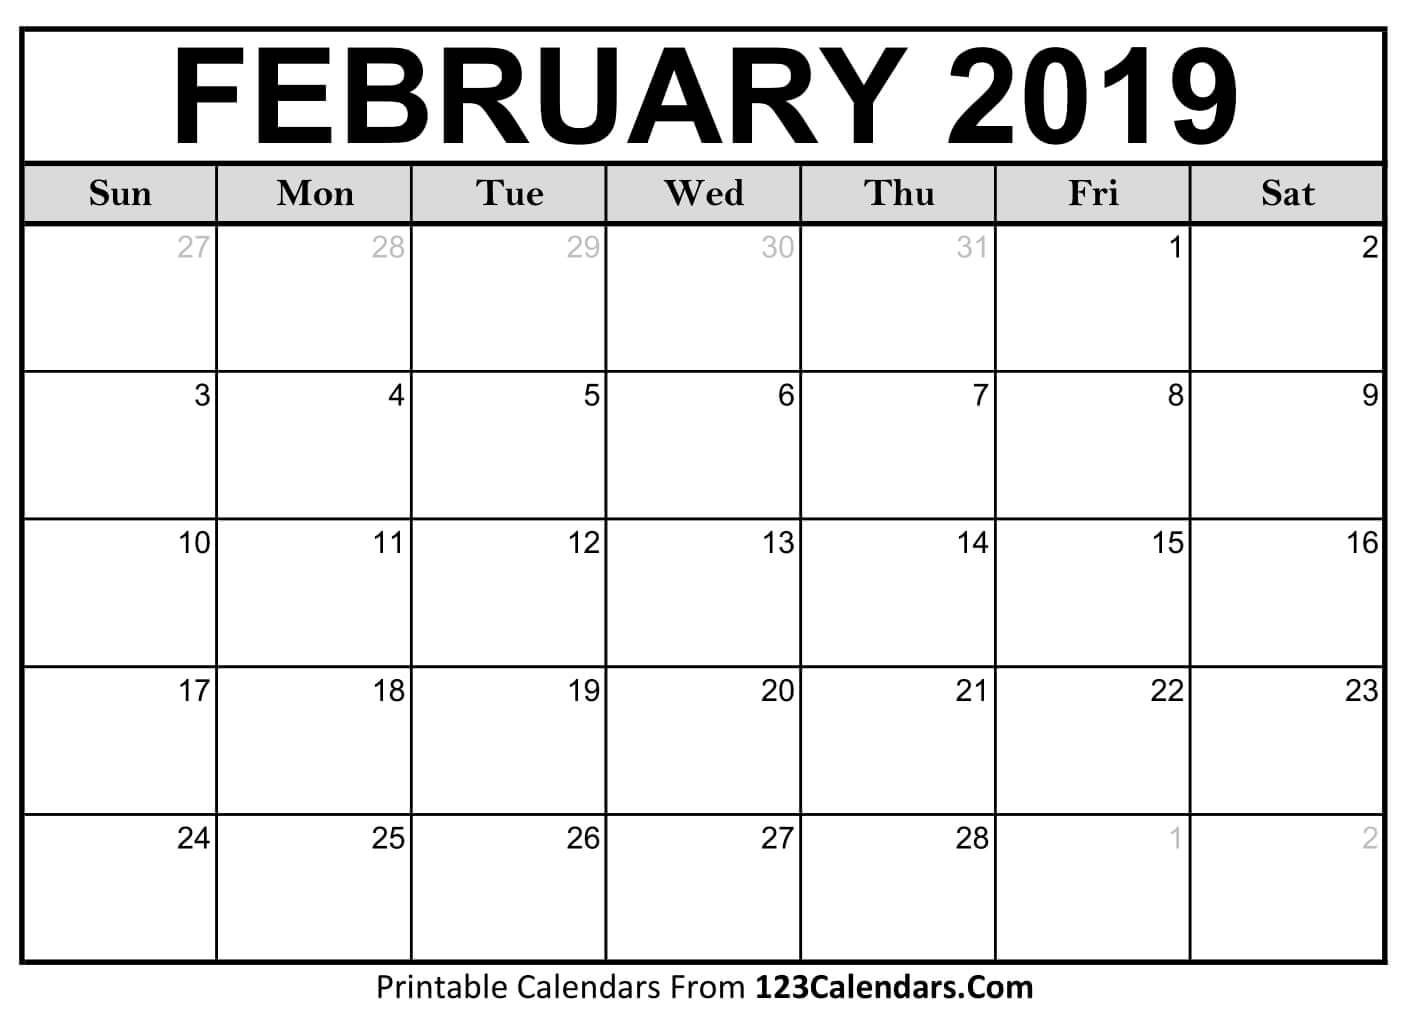 February 2019 Printable Calendar. Add Your Notes Quickly And Easily